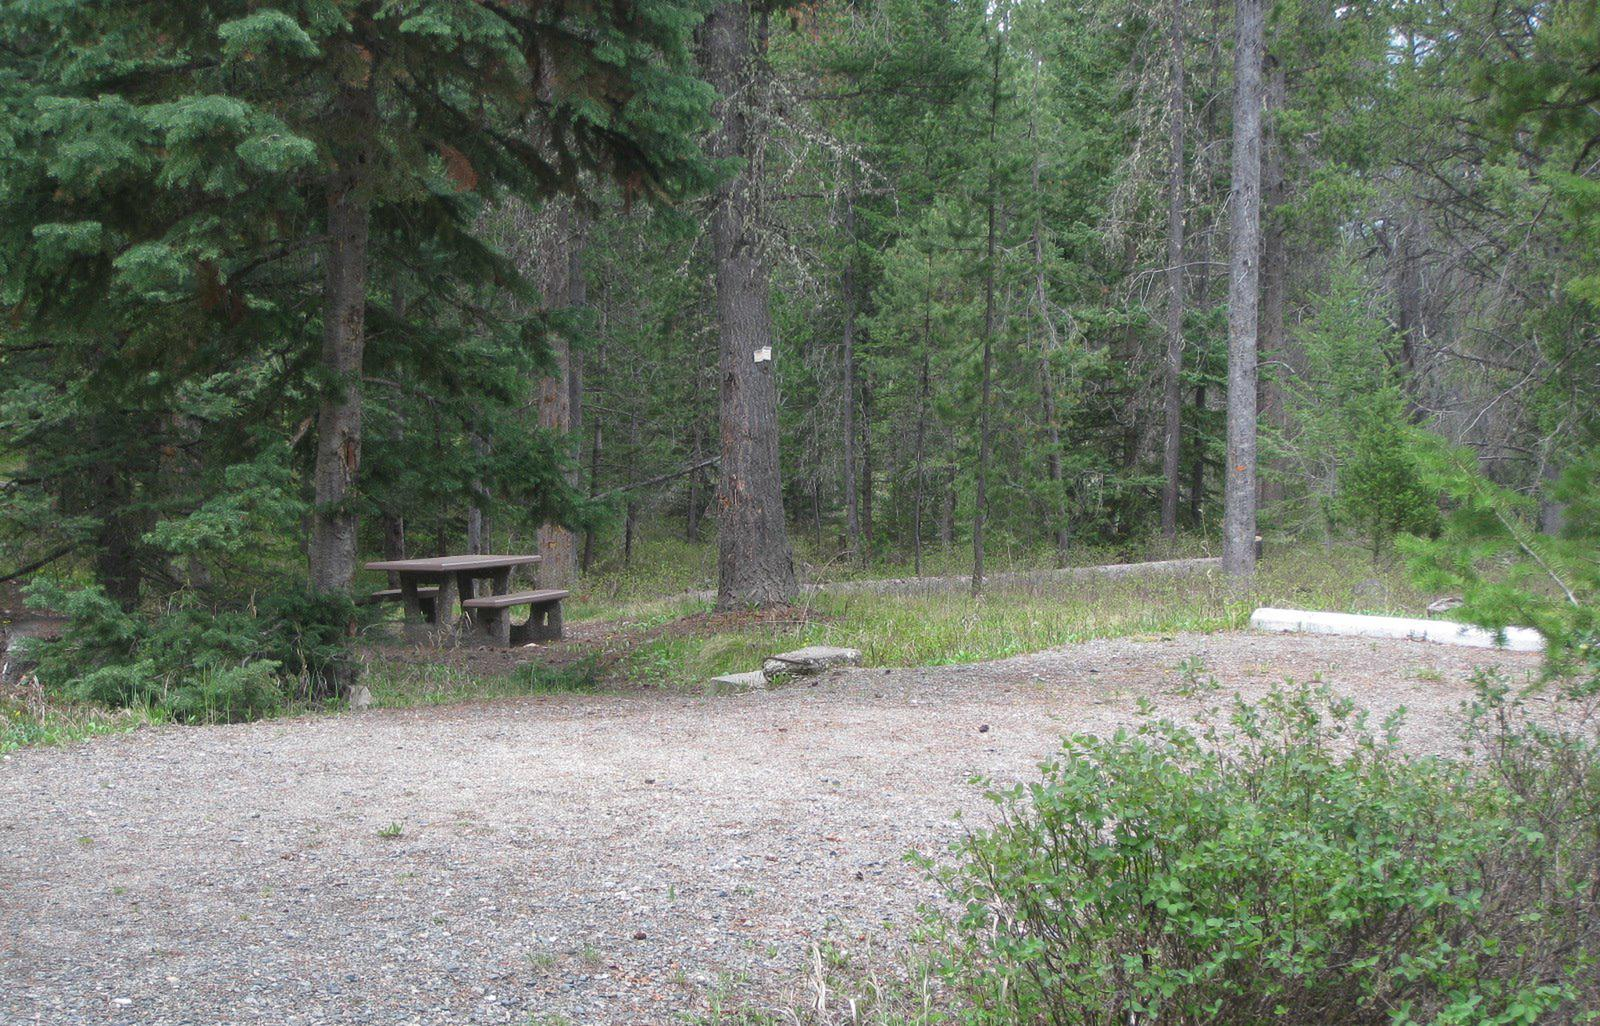 Site C17, campsite surrounded by pine trees, picnic table & fire ringSite C17